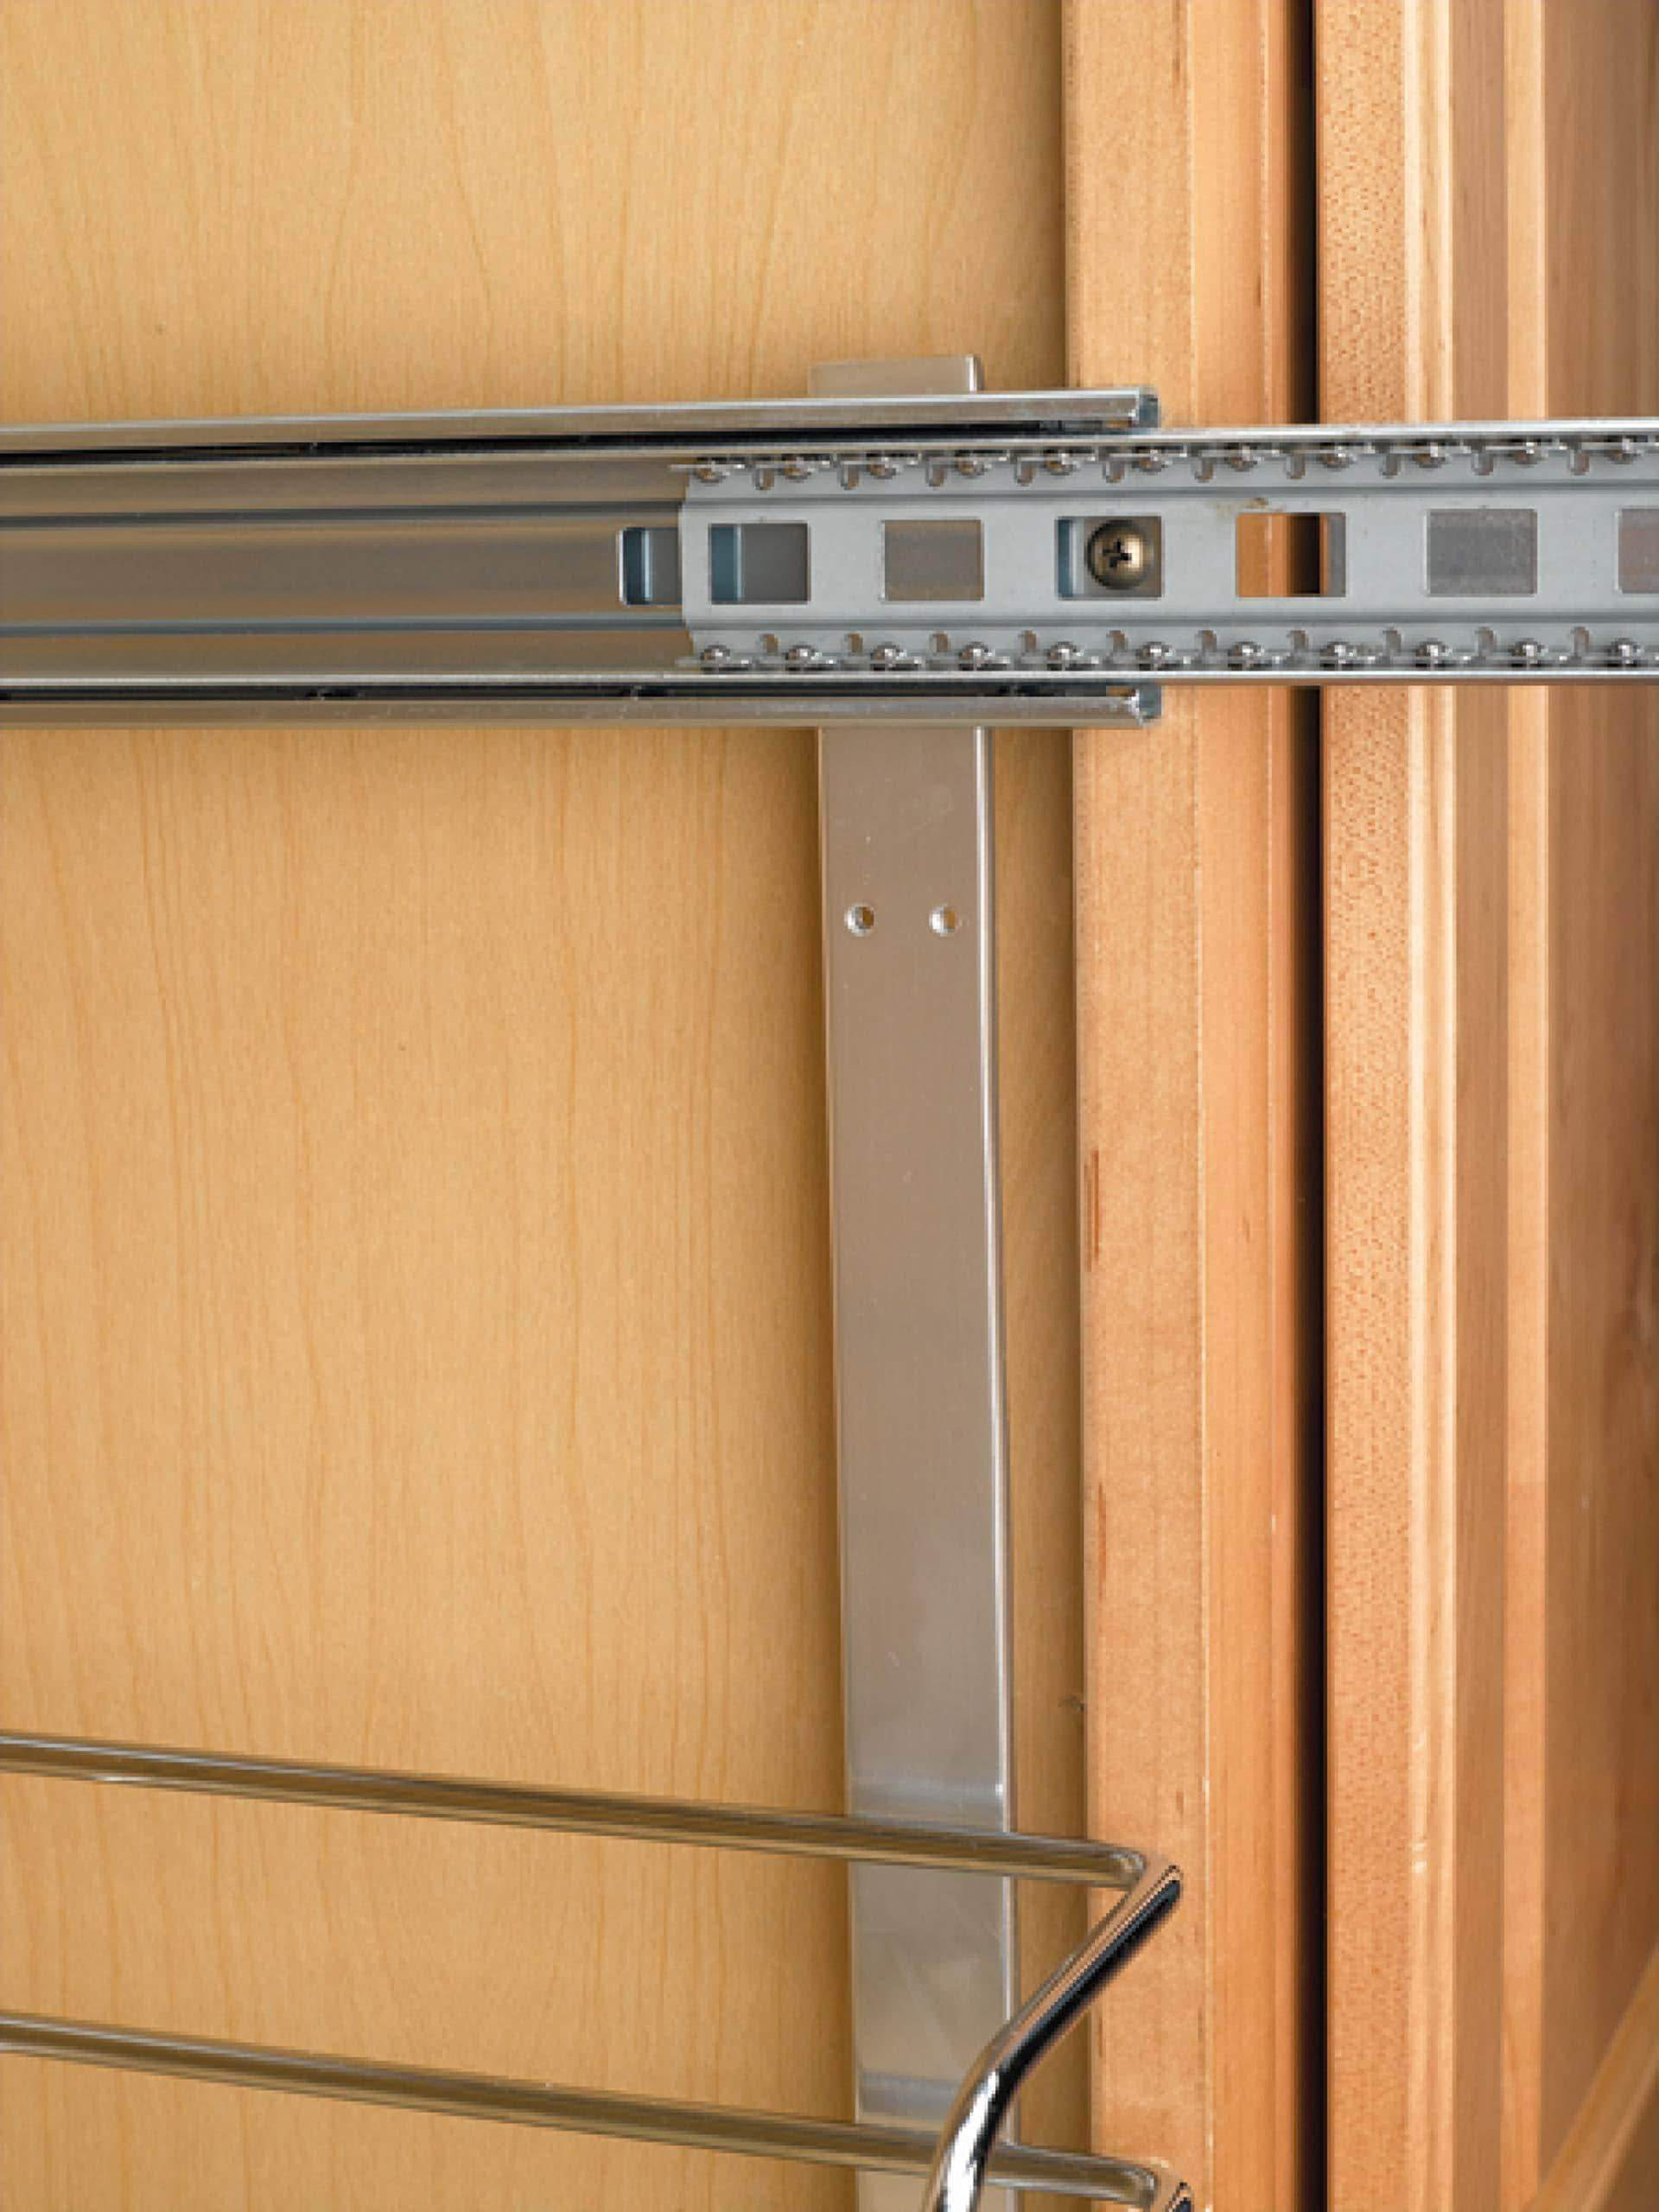 Try rev a shelf 5wb2 1522 cr 15 in w x 22 in d base cabinet pull out chrome 2 tier wire basket